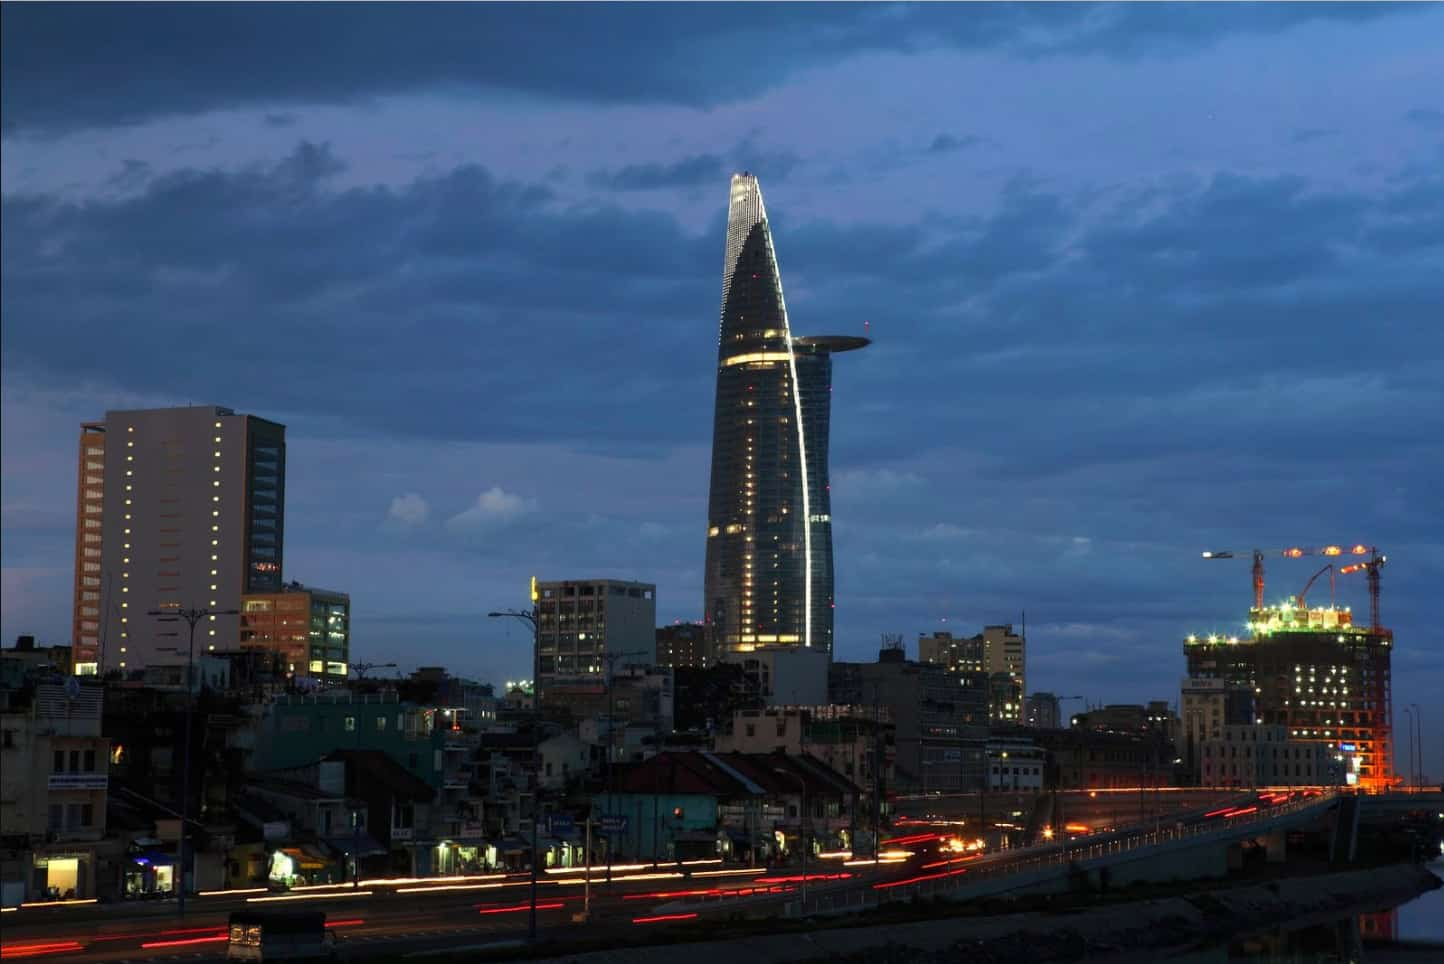 Bitexco Tower building in Saigon at night